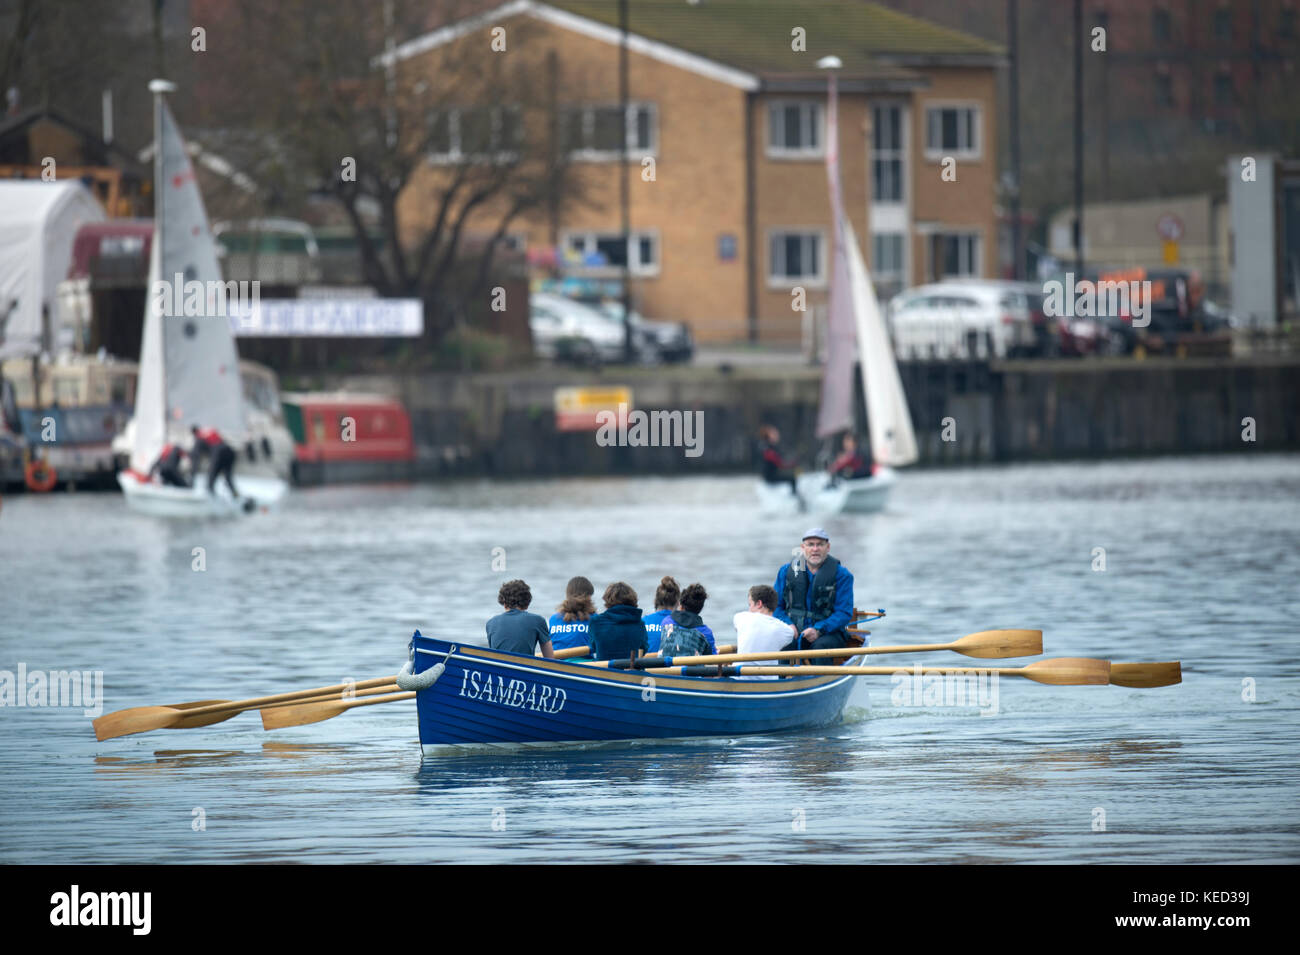 spGig rowers in the docks at Hotwells in Bristol Docks - Stock Image